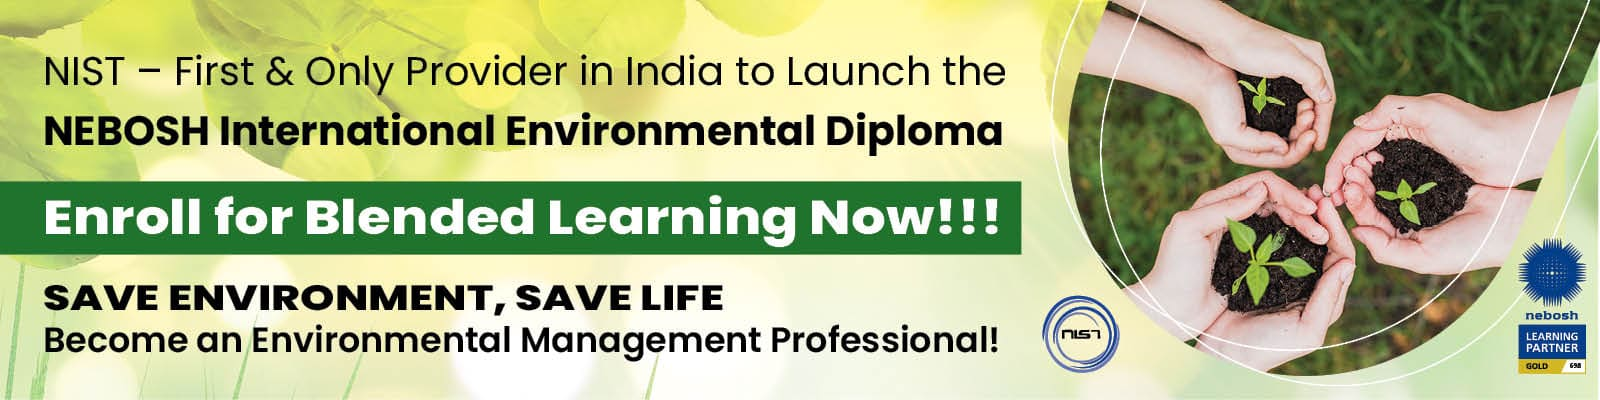 nist-launches-the-nebosh-international-diploma-in-environmental-management